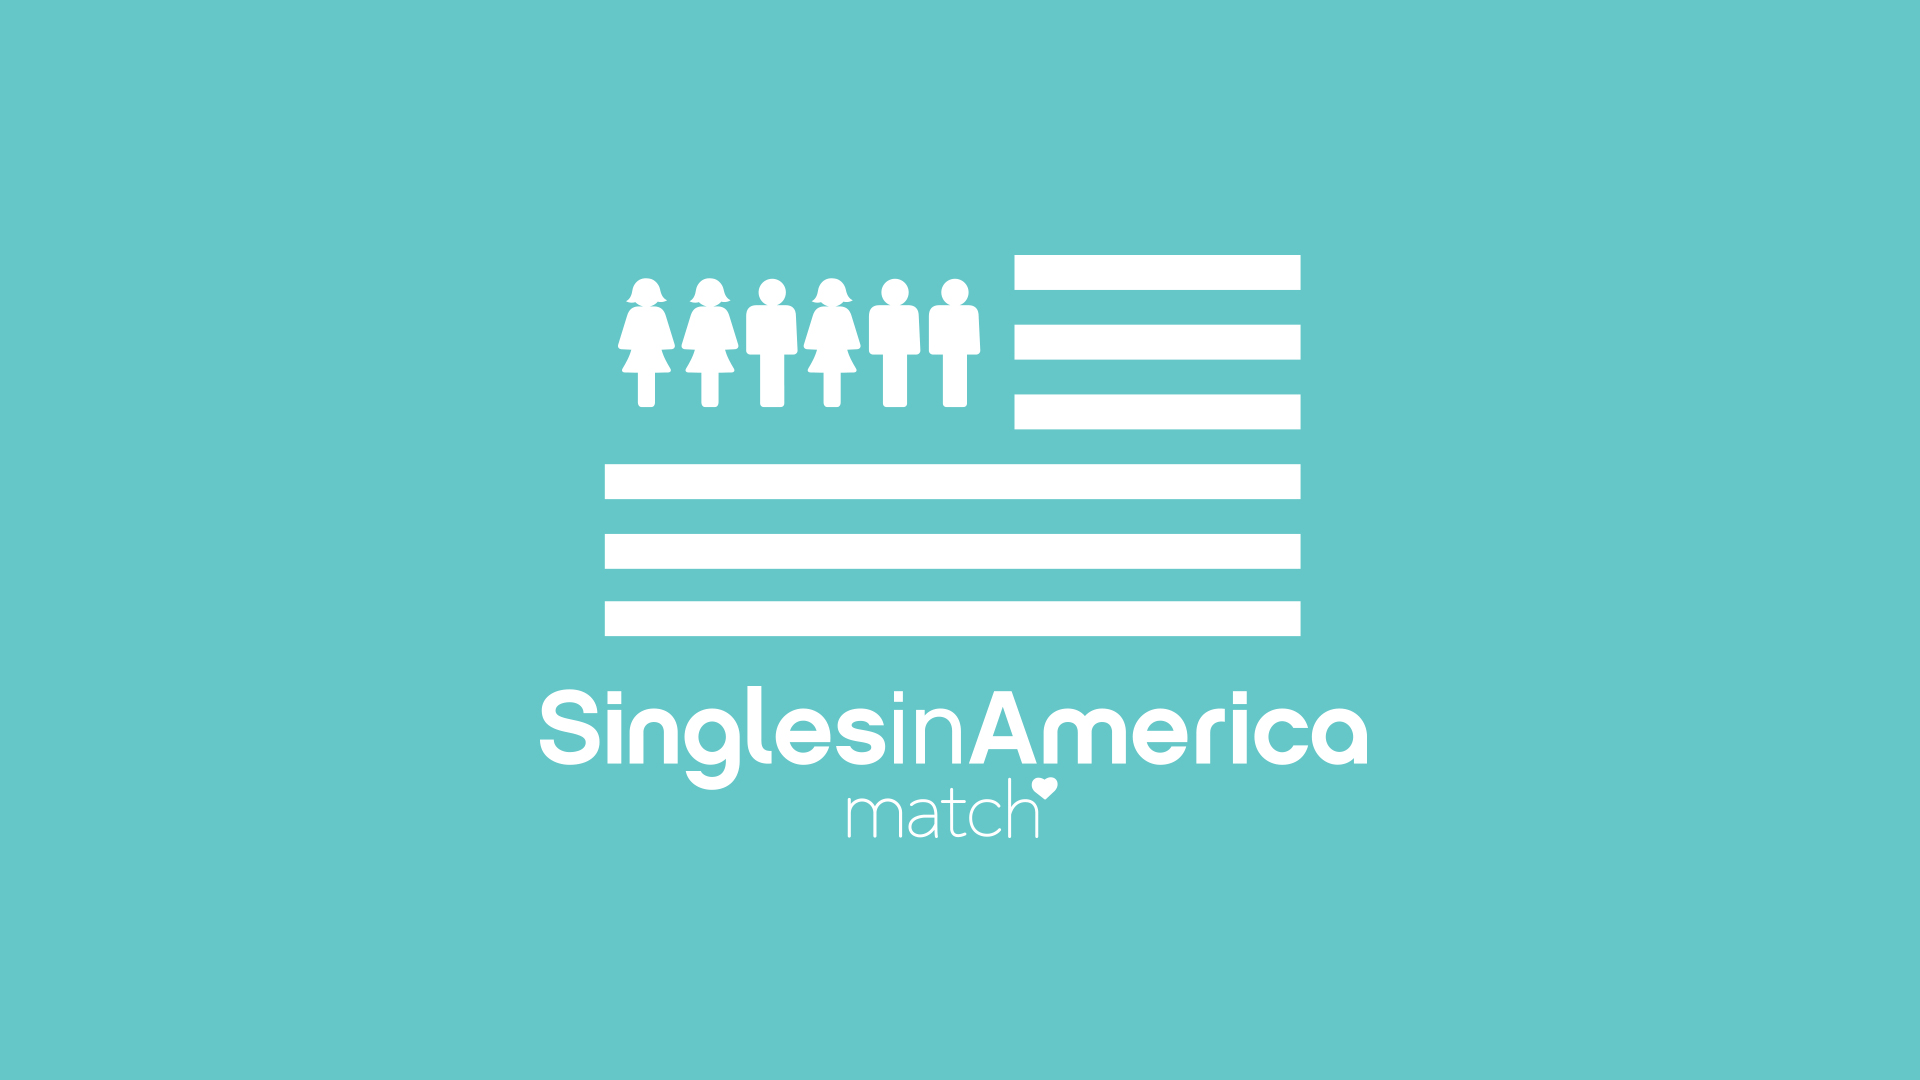 Singles In America study by Match.com